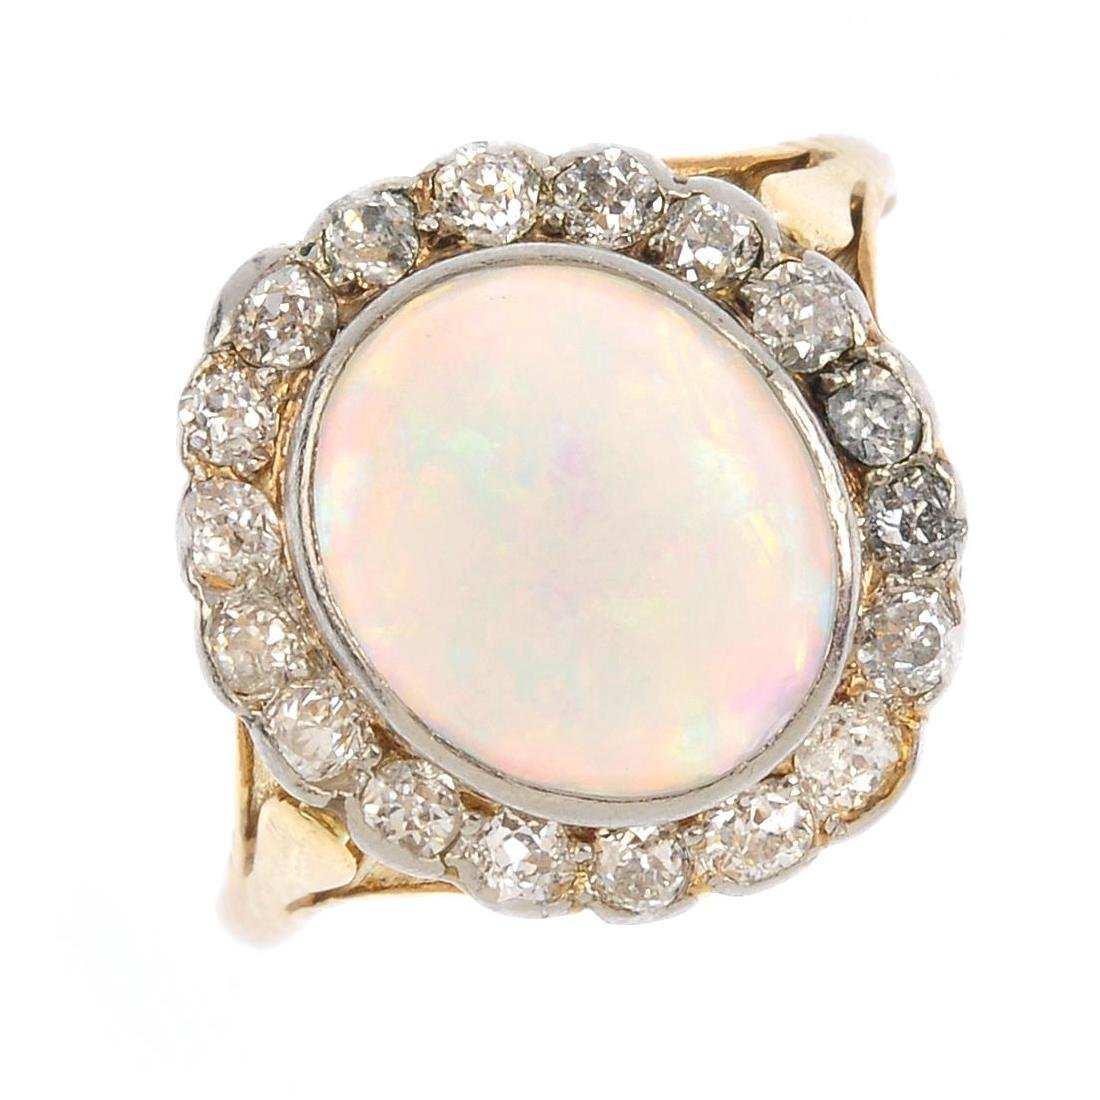 An early 20th century platinum and 18ct gold opal and